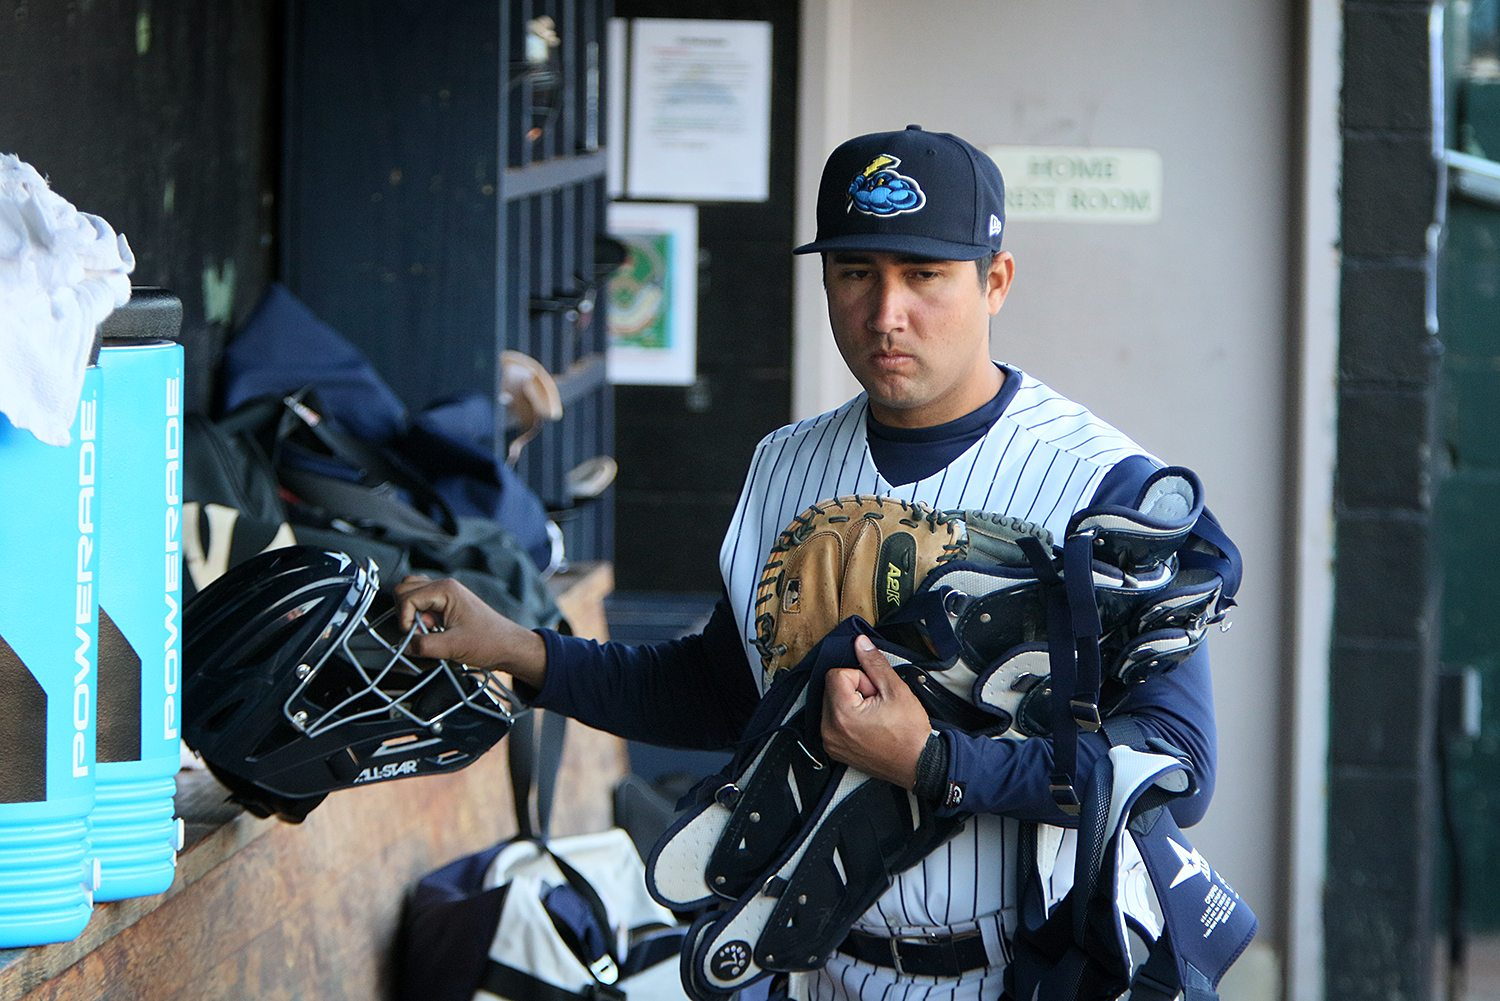 Trenton Thunder catcher Francisco Diaz in the dugout before a game against the Portland Sea Dogs at ARM & HAMMER Park in Trenton on Wednesday, April 13, 2016. Photo by Martin Griff